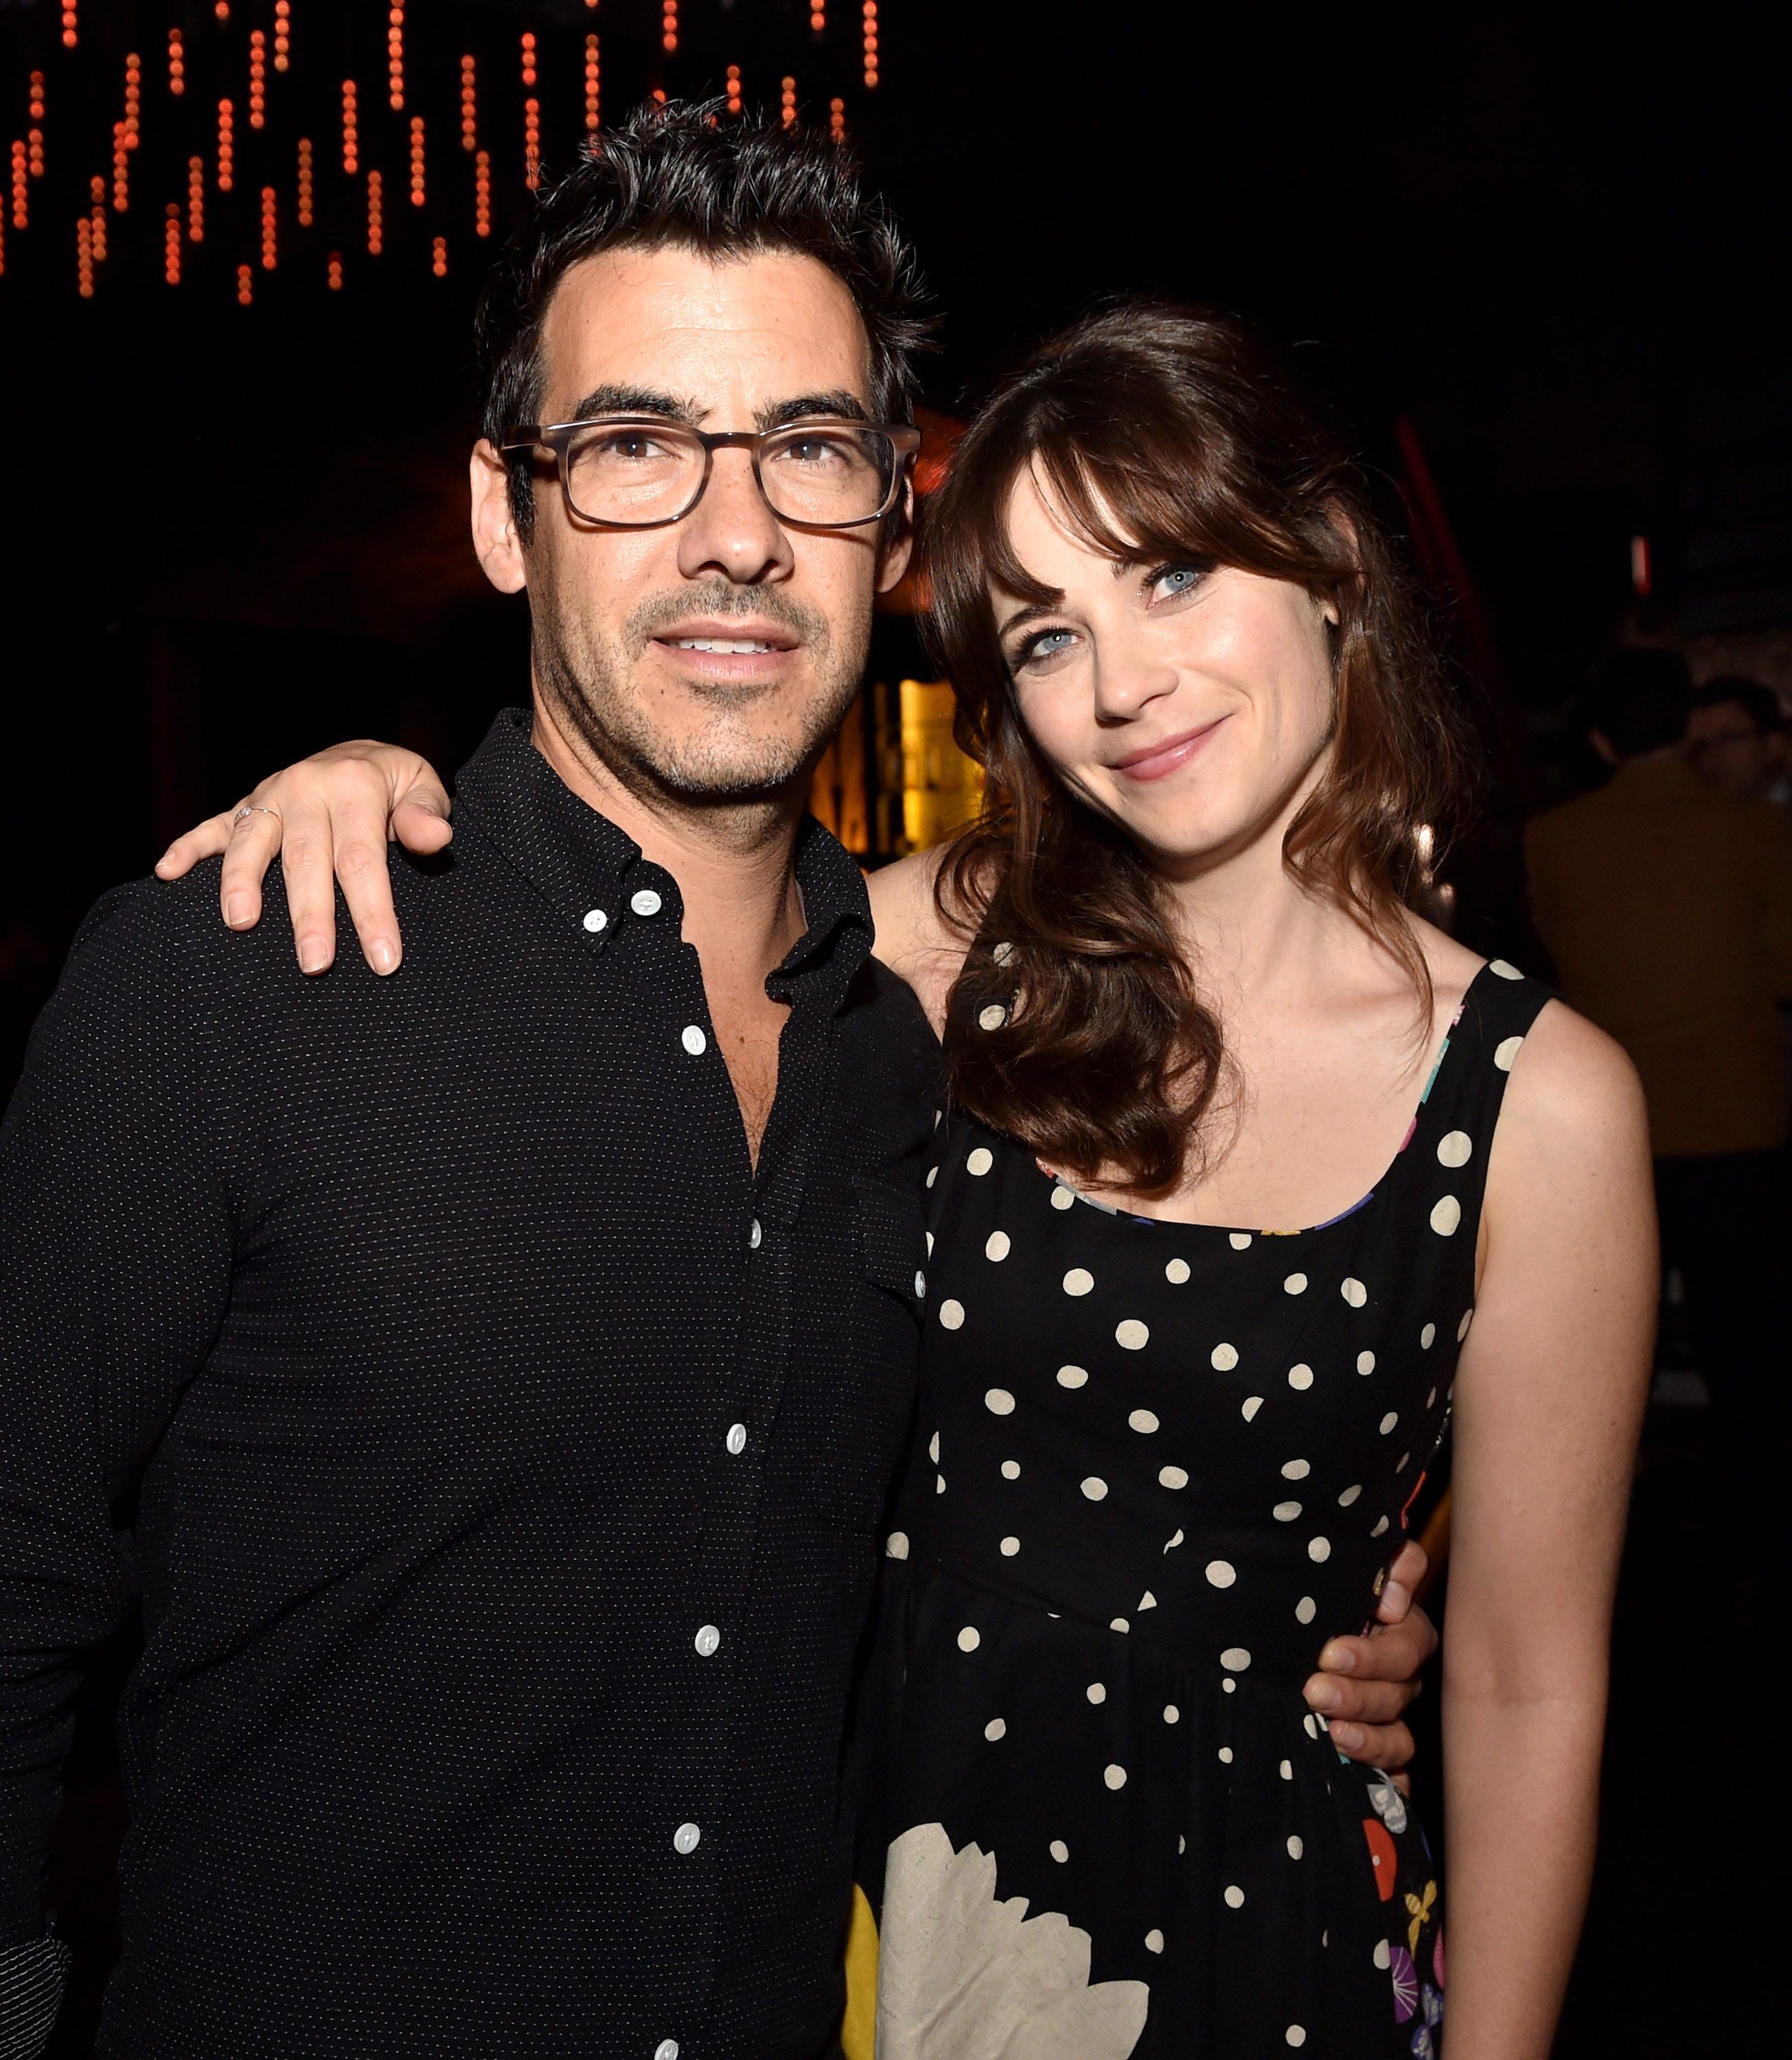 Enamour Zooey Husband Is Her Husband Same Biz As His New Wife What Does Jacob Pechenik Zooey Husband Is Zooey Deschanel Husband Pics Zooey Deschanel nice food Zooey Deschanel Husband